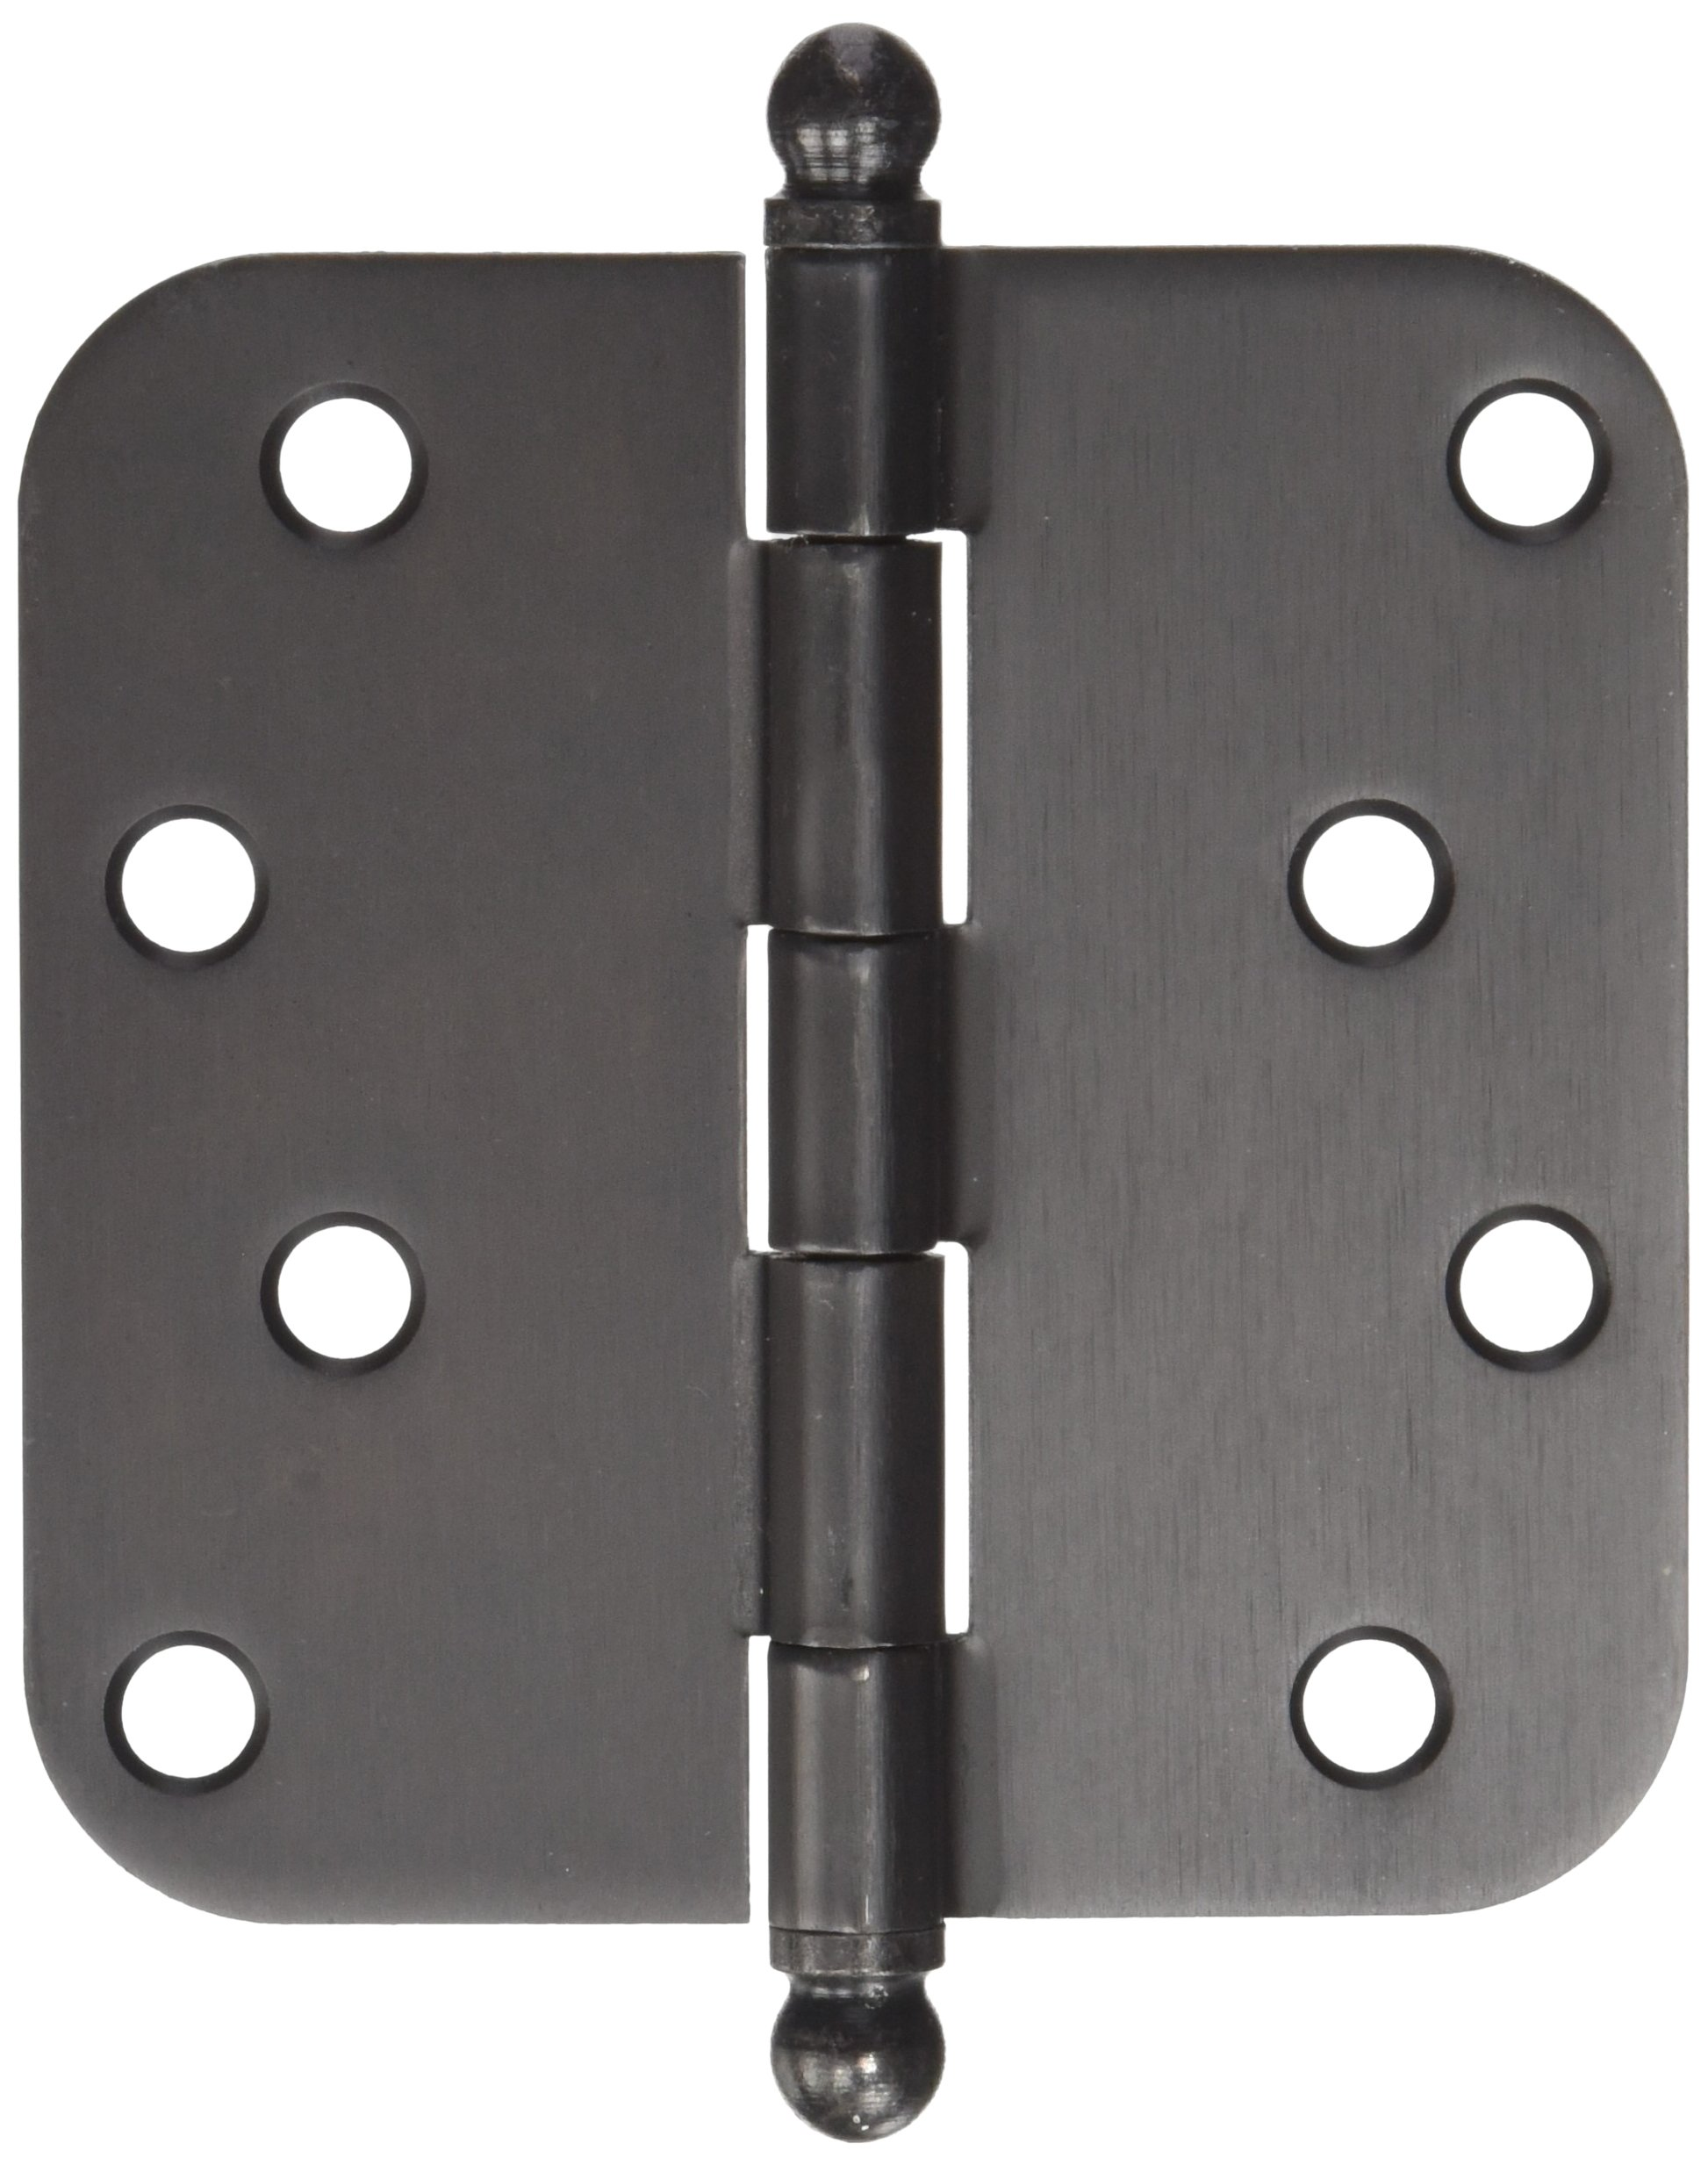 Deltana S44R510B-BT Steel 4-Inch x 4-Inch x 5/8-Inch Radius Hinge with Ball Tips by Deltana